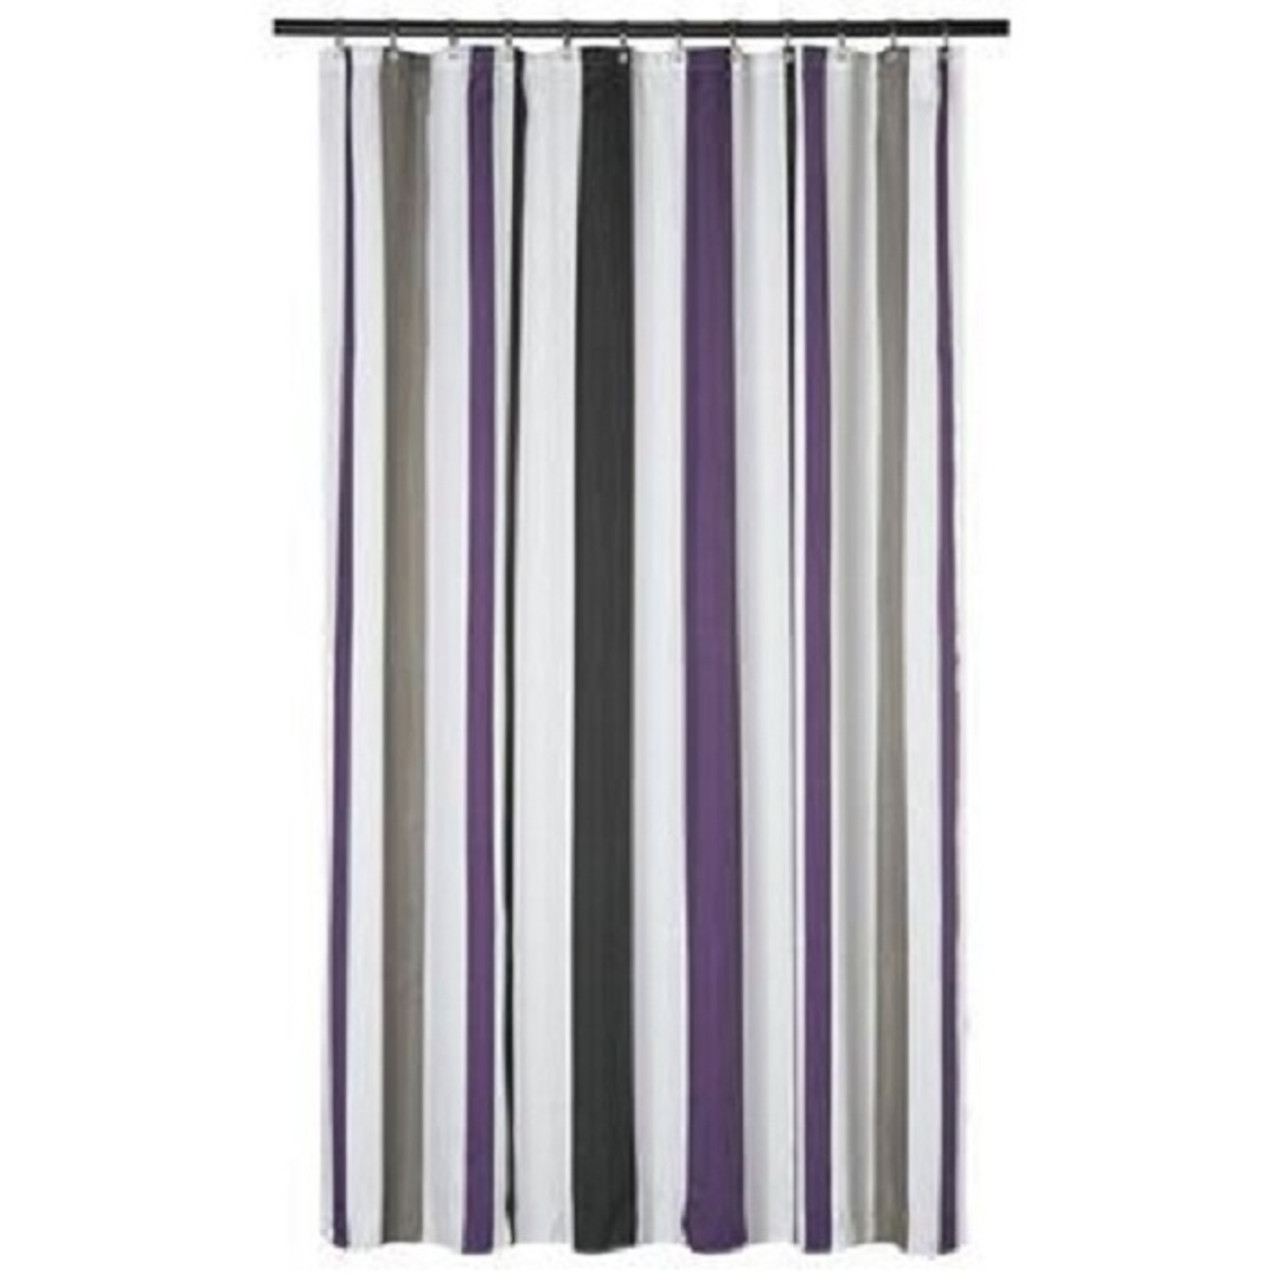 extra long shower curtain 72 x 78 inch gamma purple and gray stripes fabric